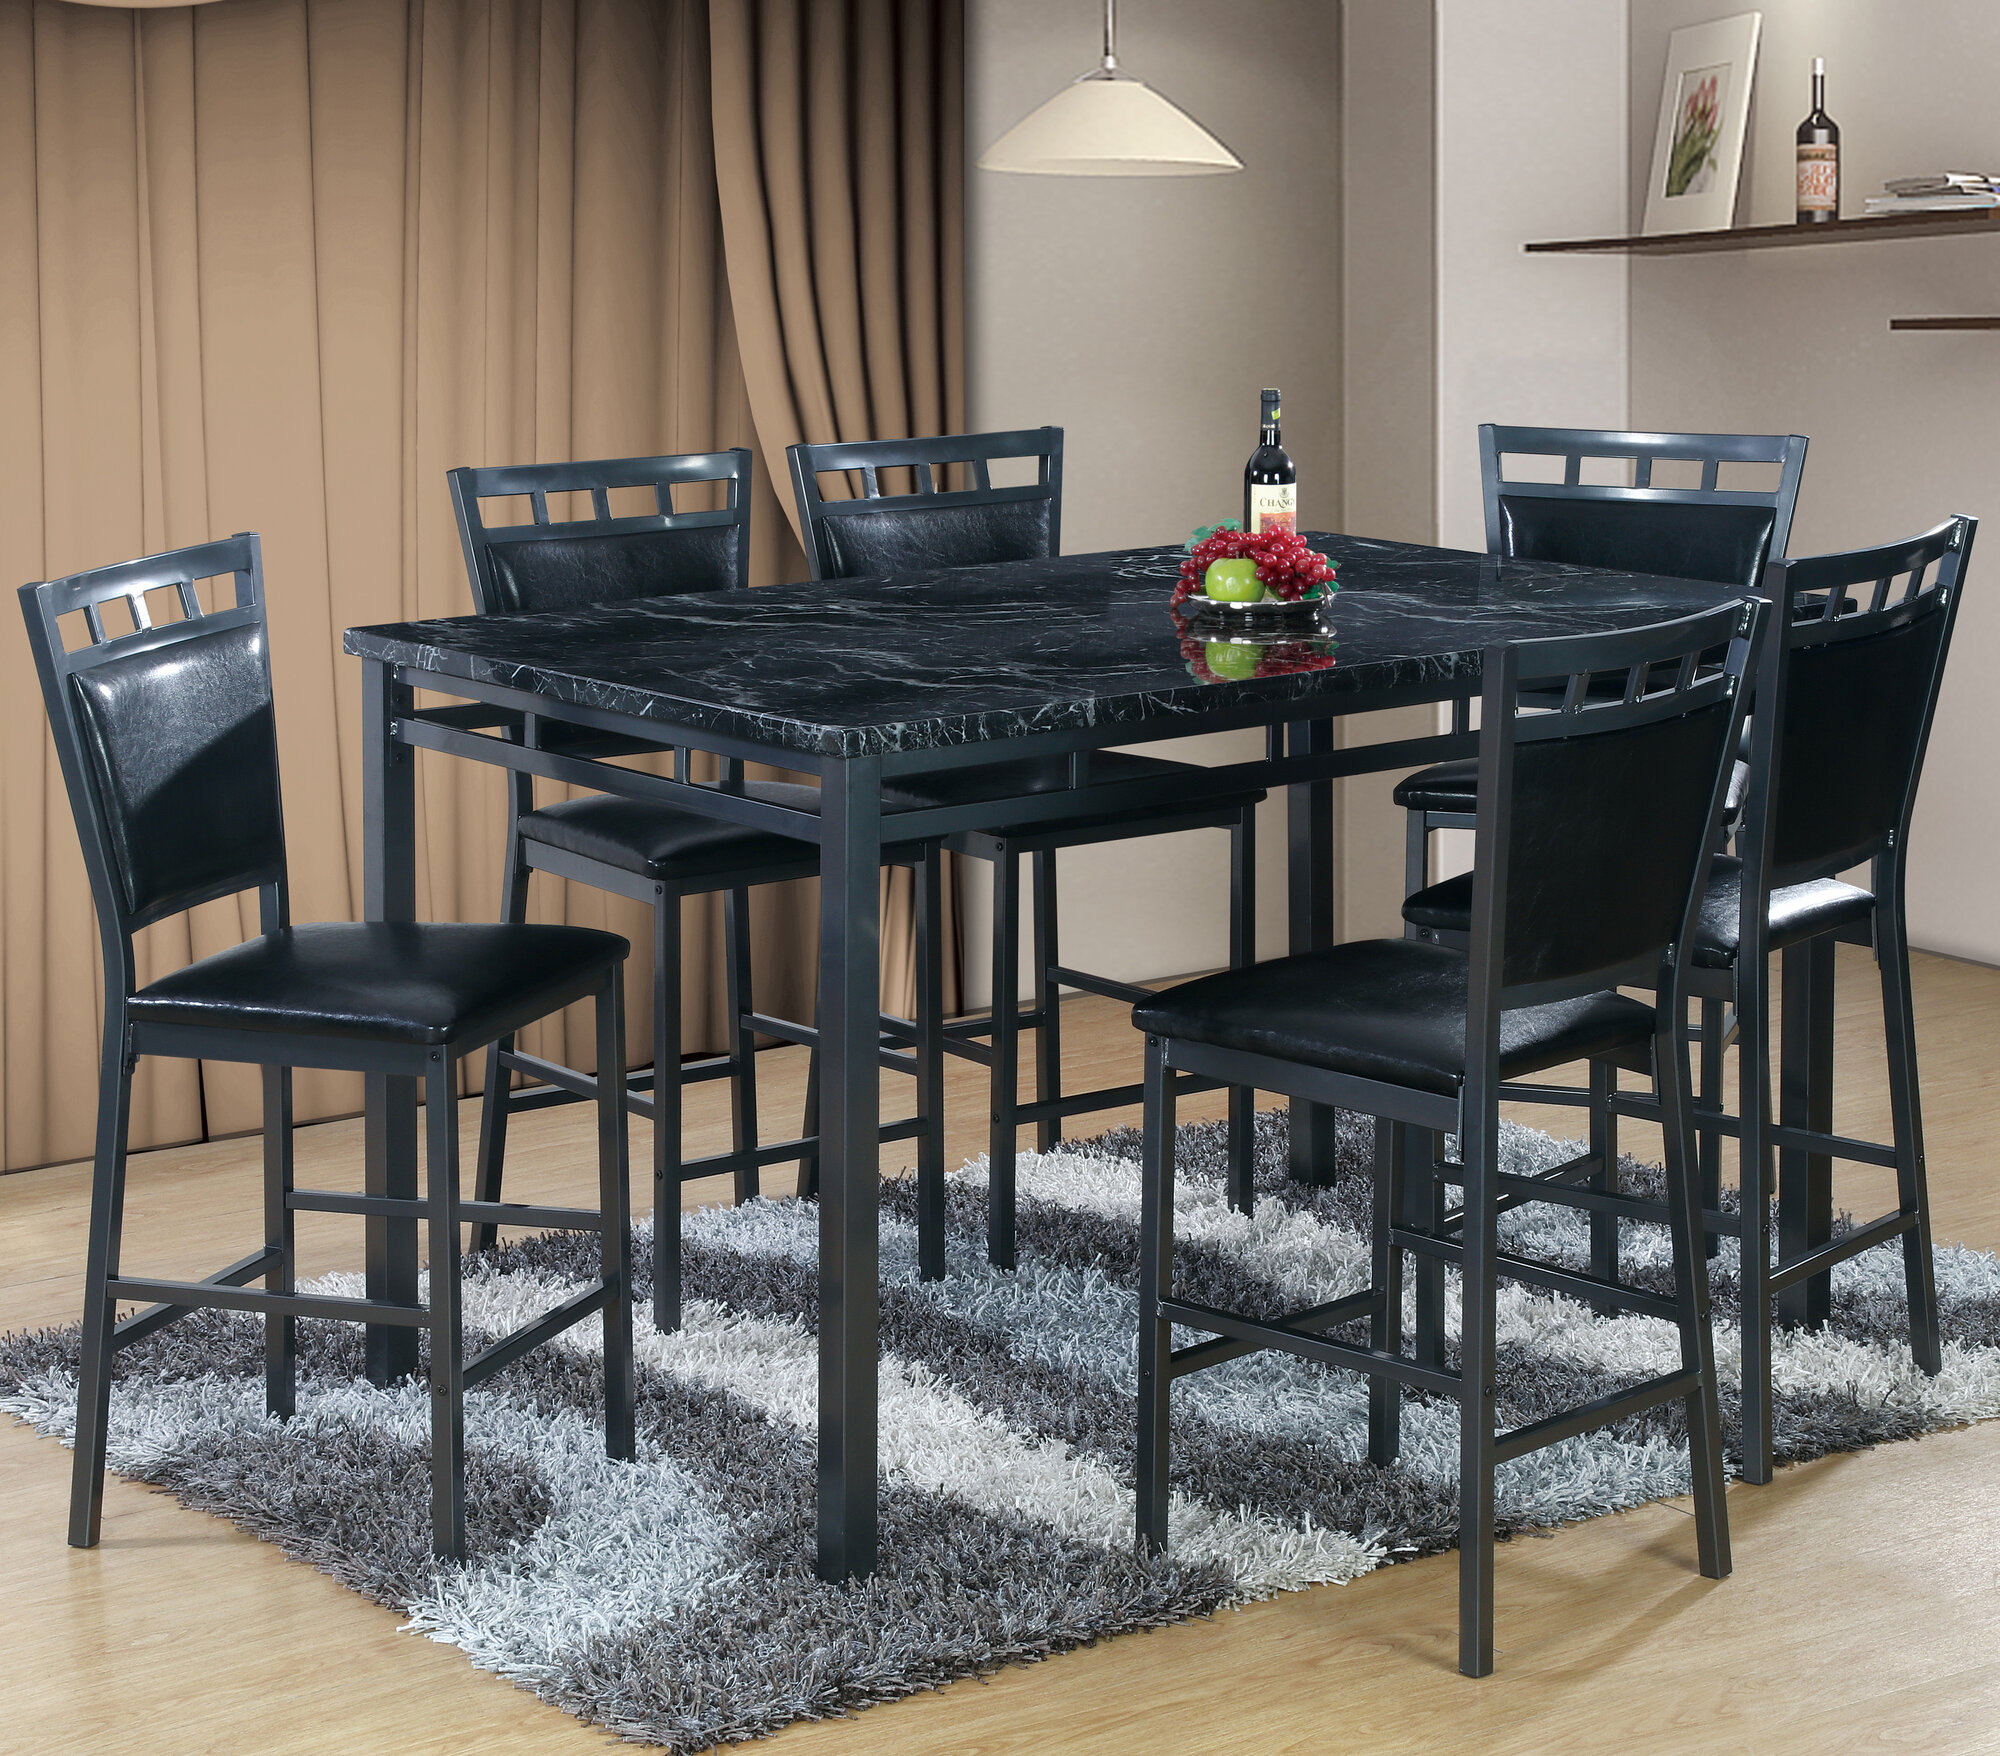 Details About Winston Porter Pickerington 7 Piece Counter Height Dining Table Set Intended For Most Recent Carson Counter Height Tables (View 21 of 25)